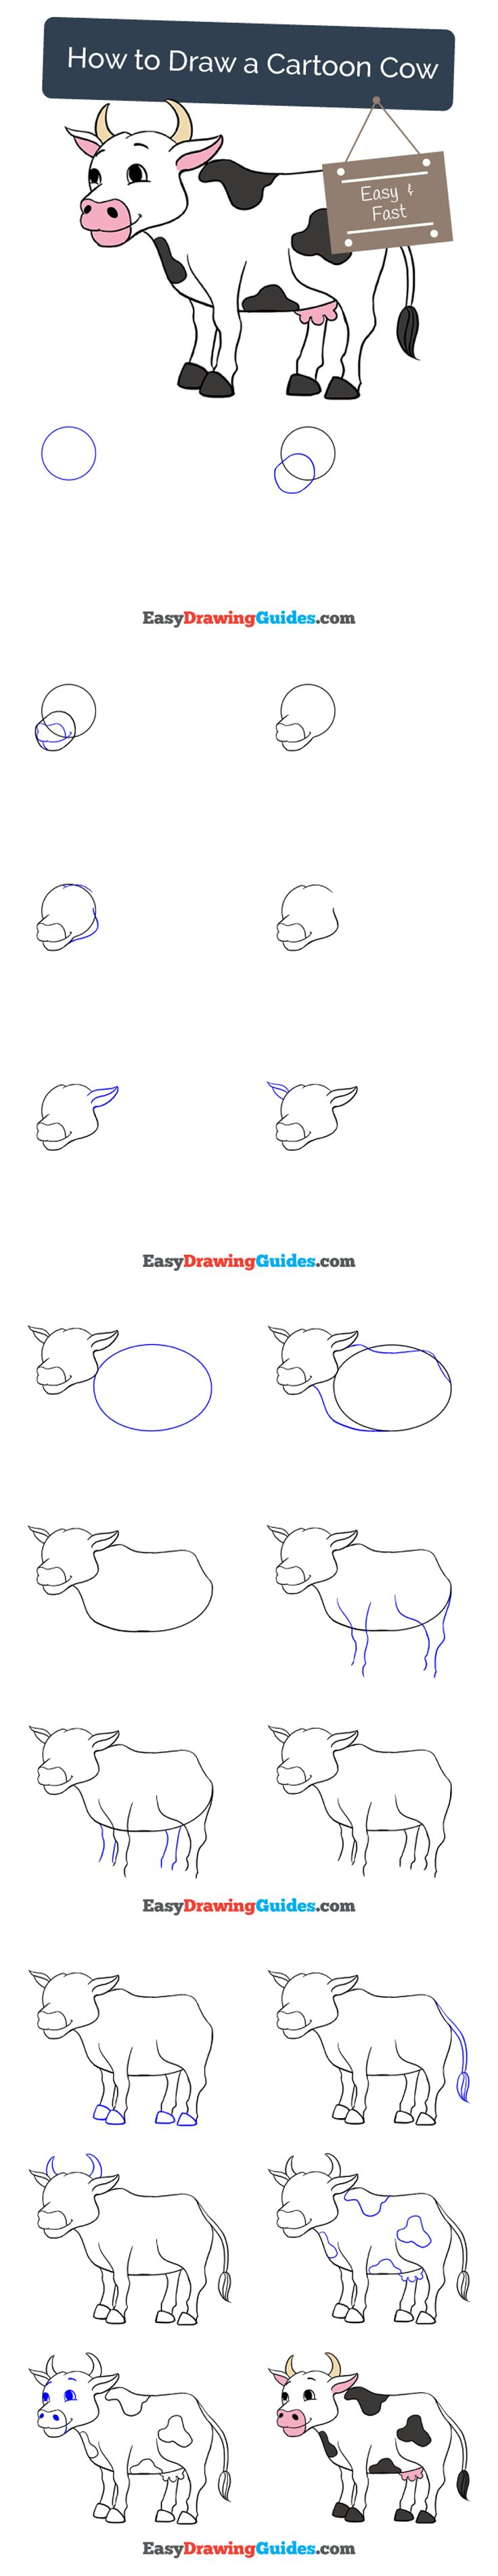 best 25 cartoon cow ideas on pinterest cow drawing cow drawing